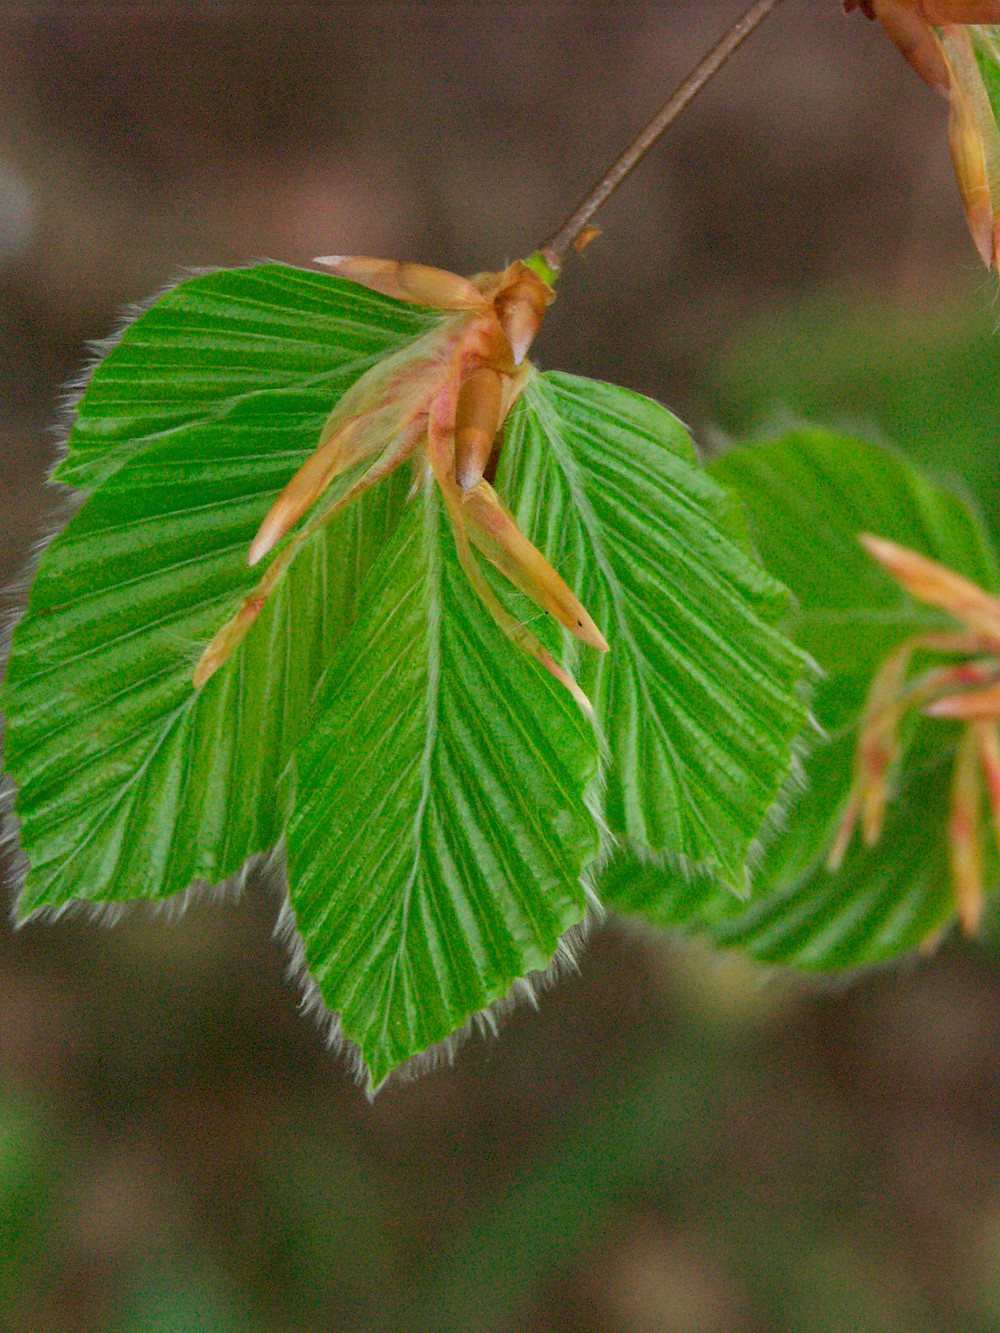 Beech leaves - on the first day they unfurled